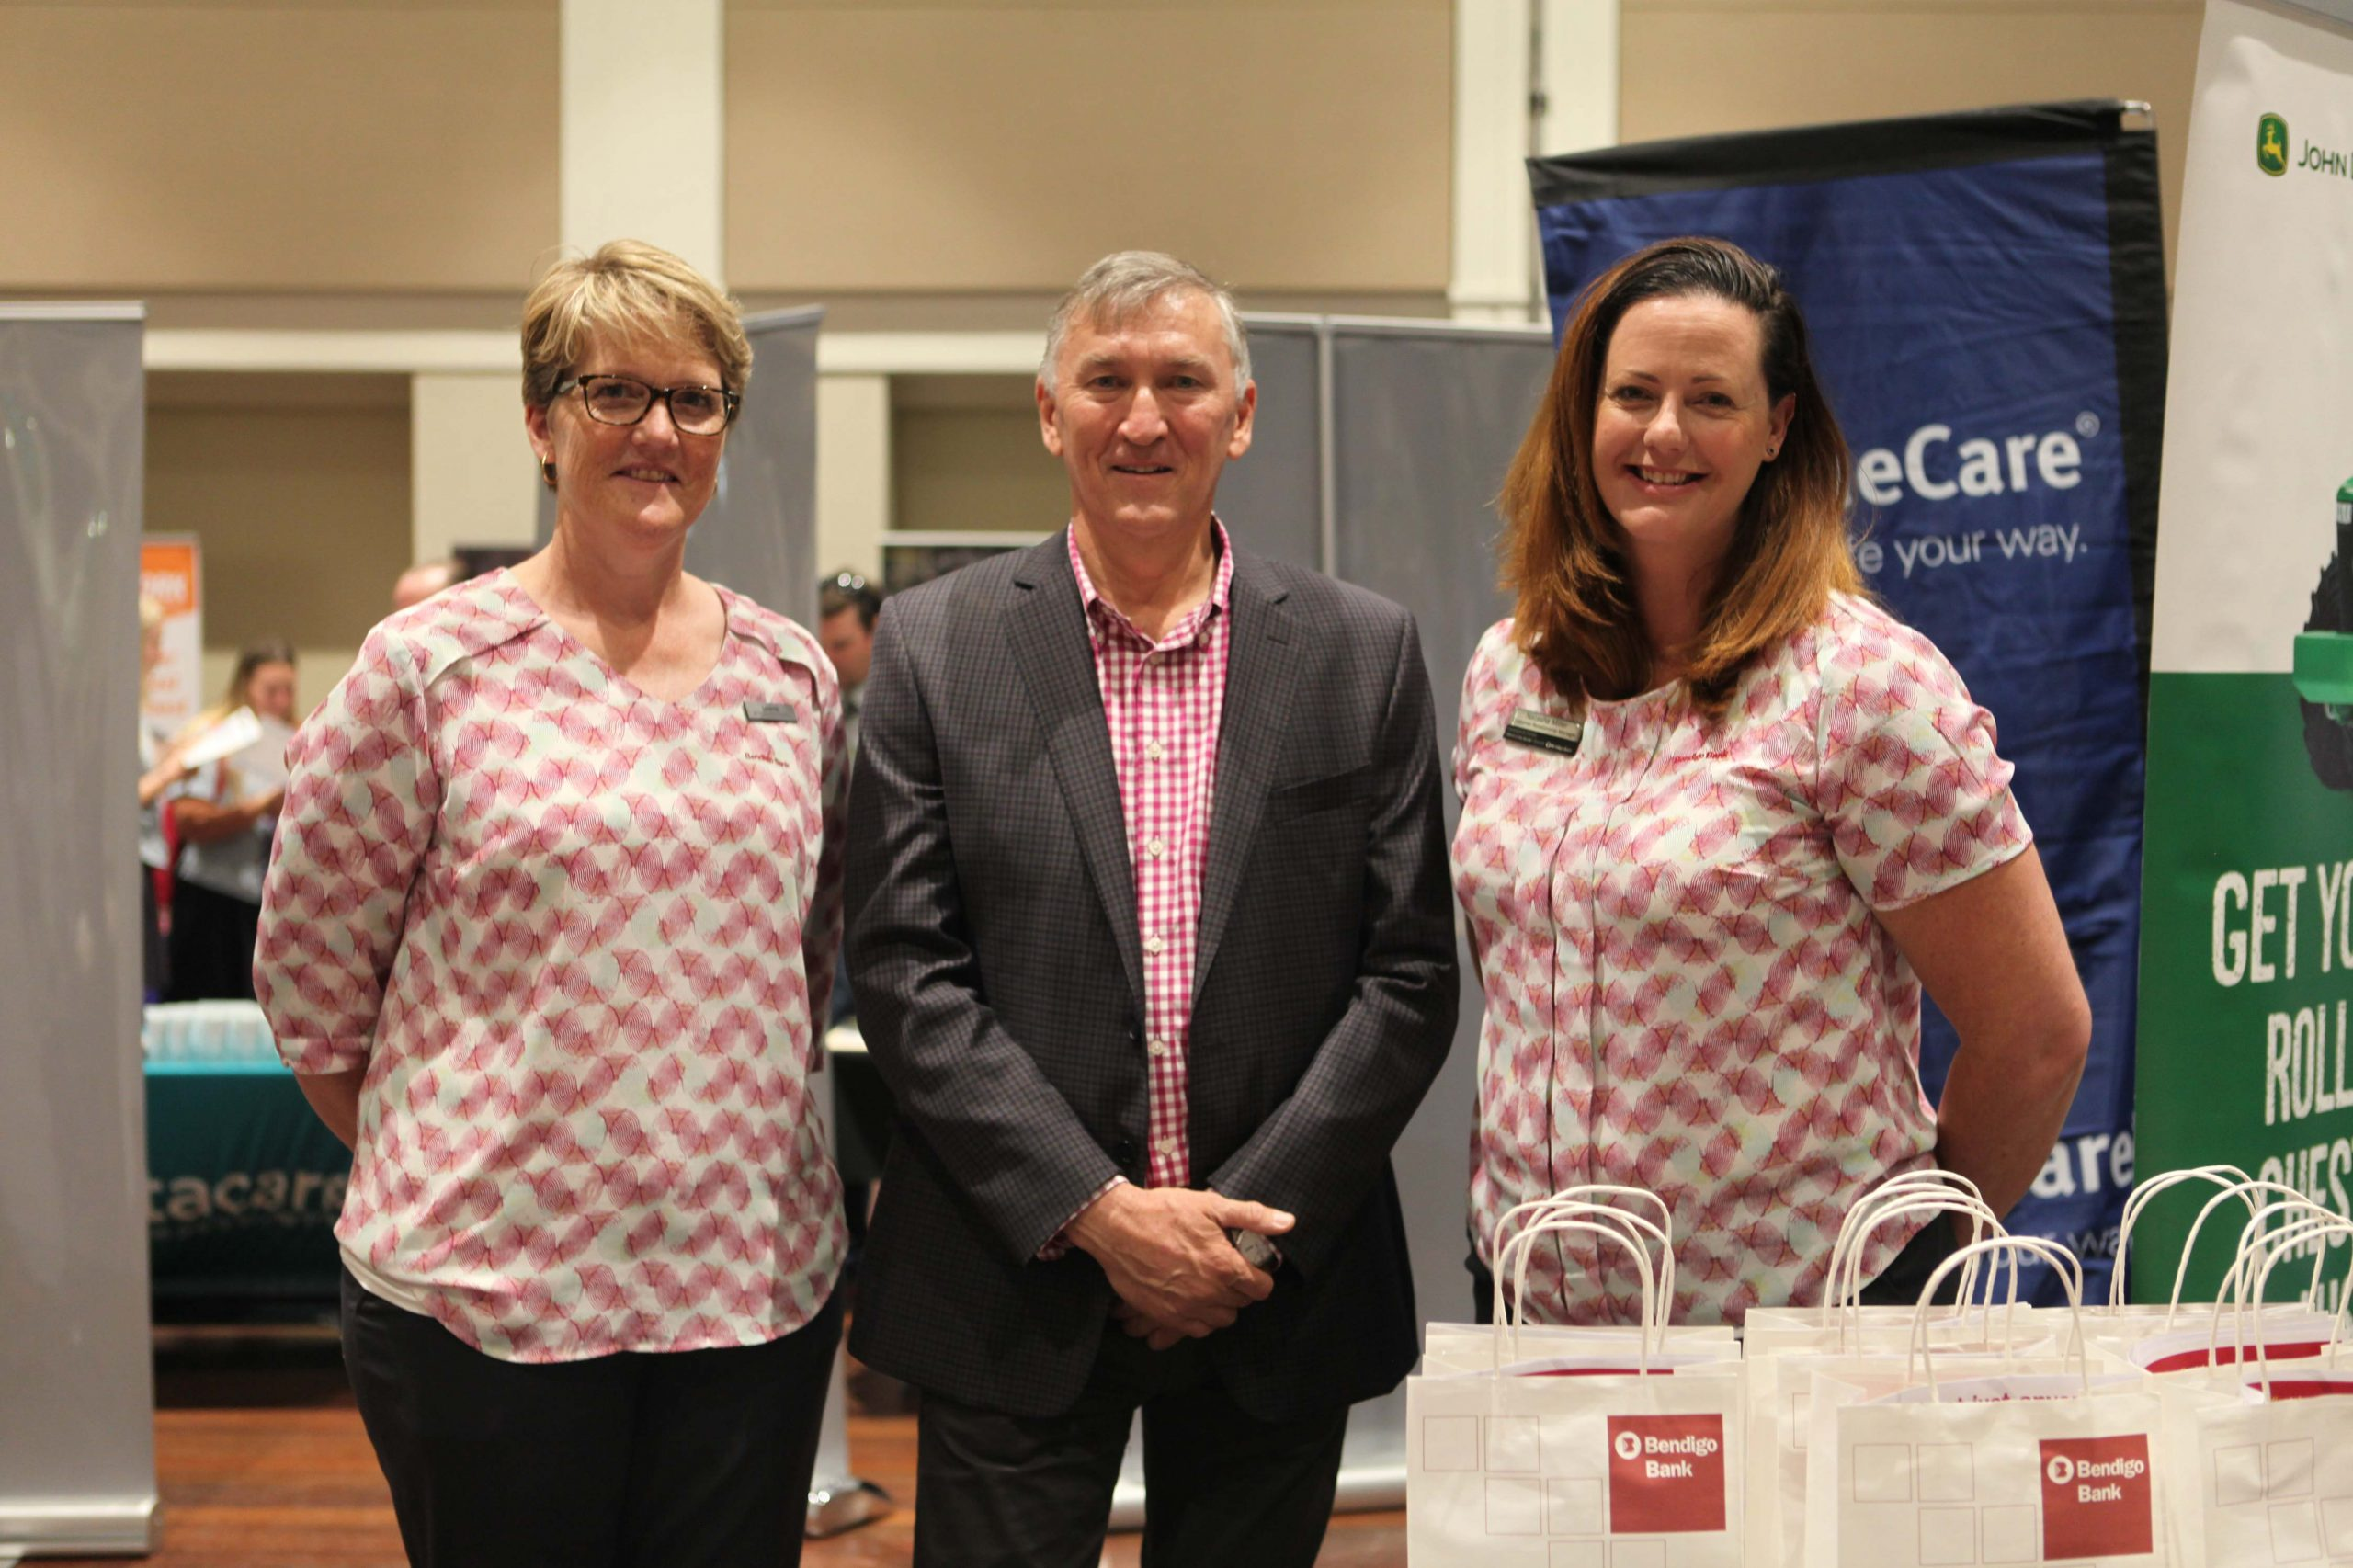 Mayor Greg Christensesn with Leanne Gretgrix and Natasha Miller of Bendigo Bank.